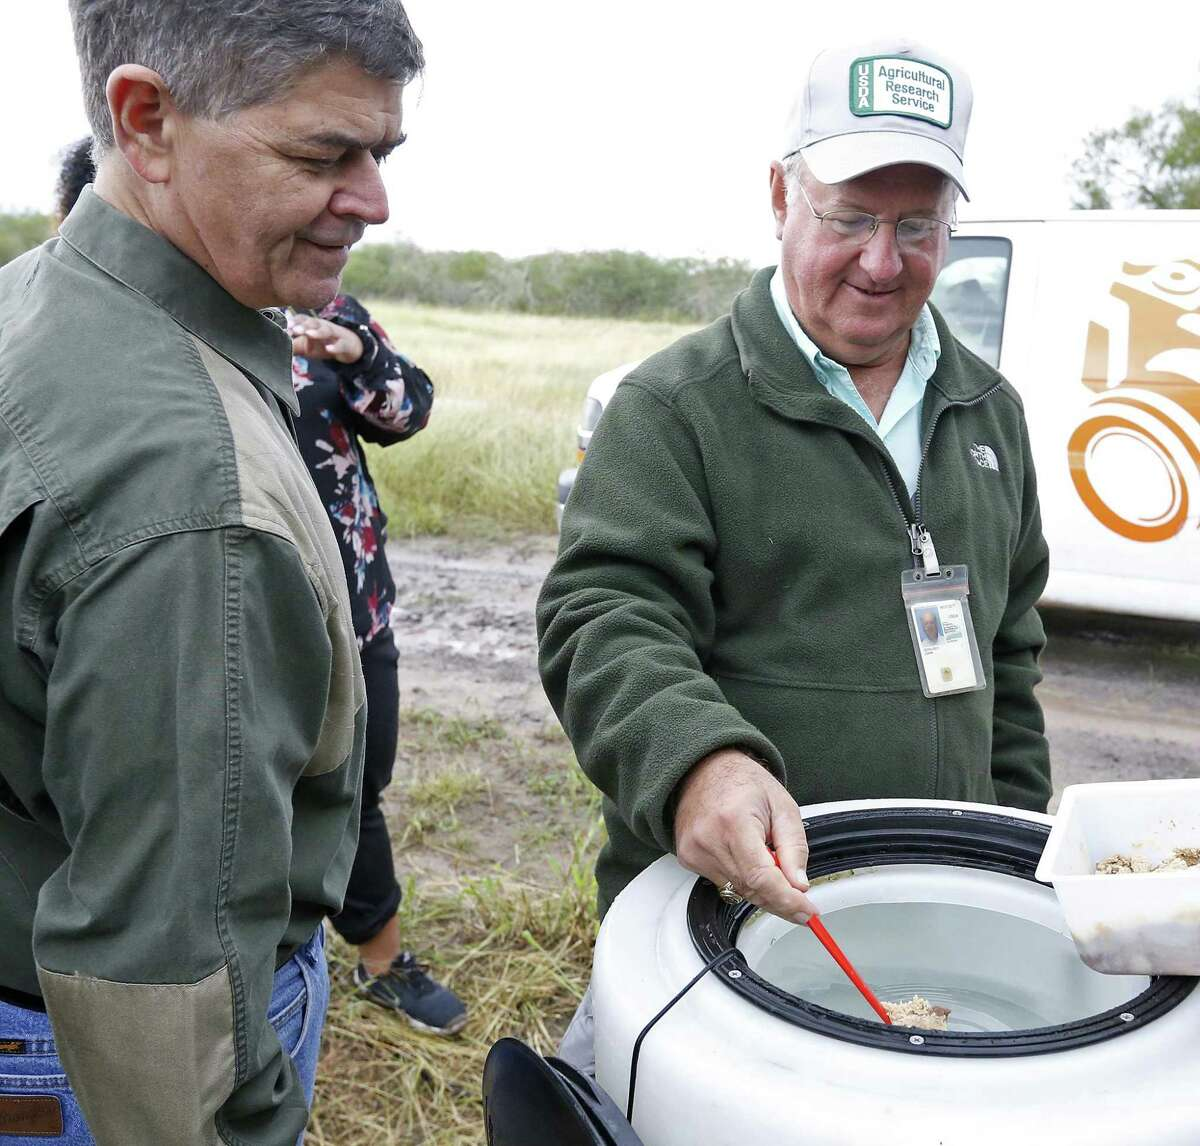 U.S. Department of Agriculture research entomologist John A. Goolsby, right, shows U.S. Rep. Filemon Vela, D-Brownsville, nematodes for use with a Nilgai Sprayer at Russell Ranch on Nov. 20, 2017 in Rio Hondo. Goolsby is using the nematodes to try to eradicate cattle fever ticks in South Texas.